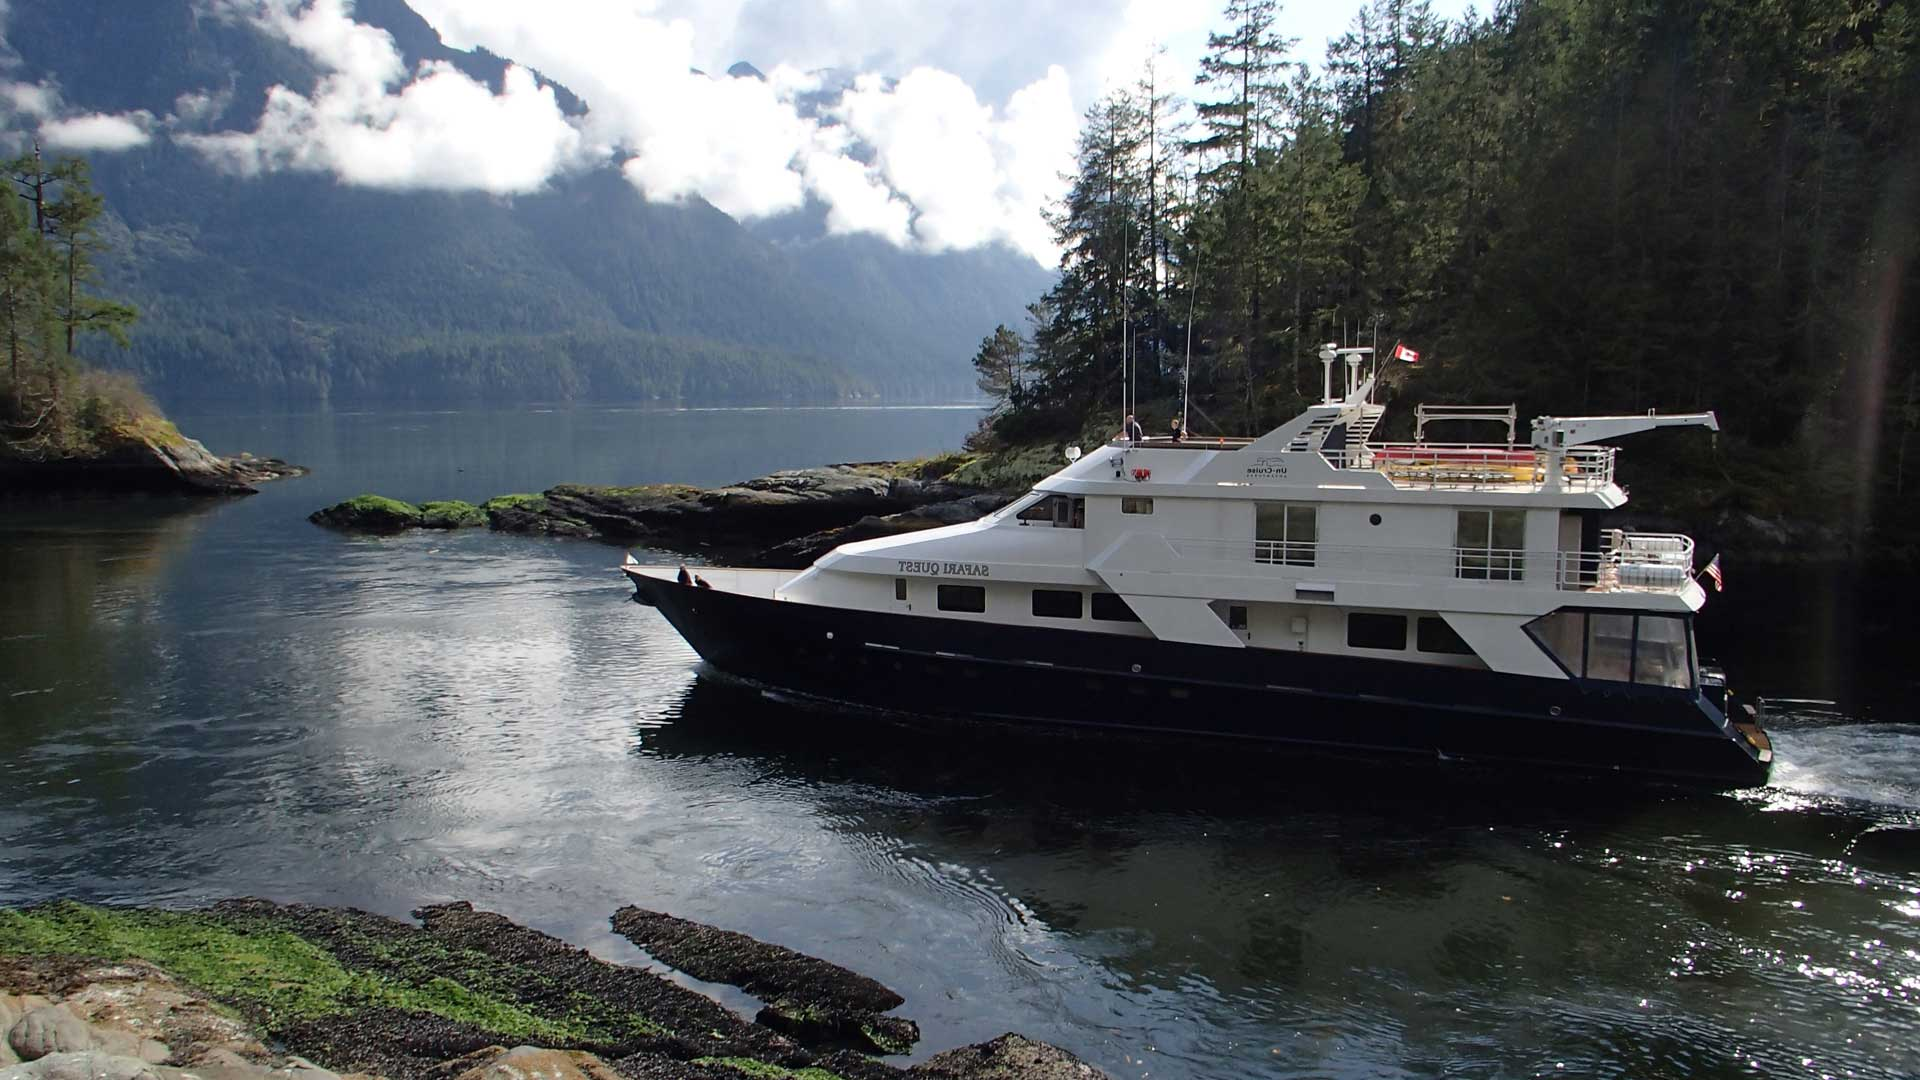 Whales Of Canadas Inside Passage Natural World Safaris